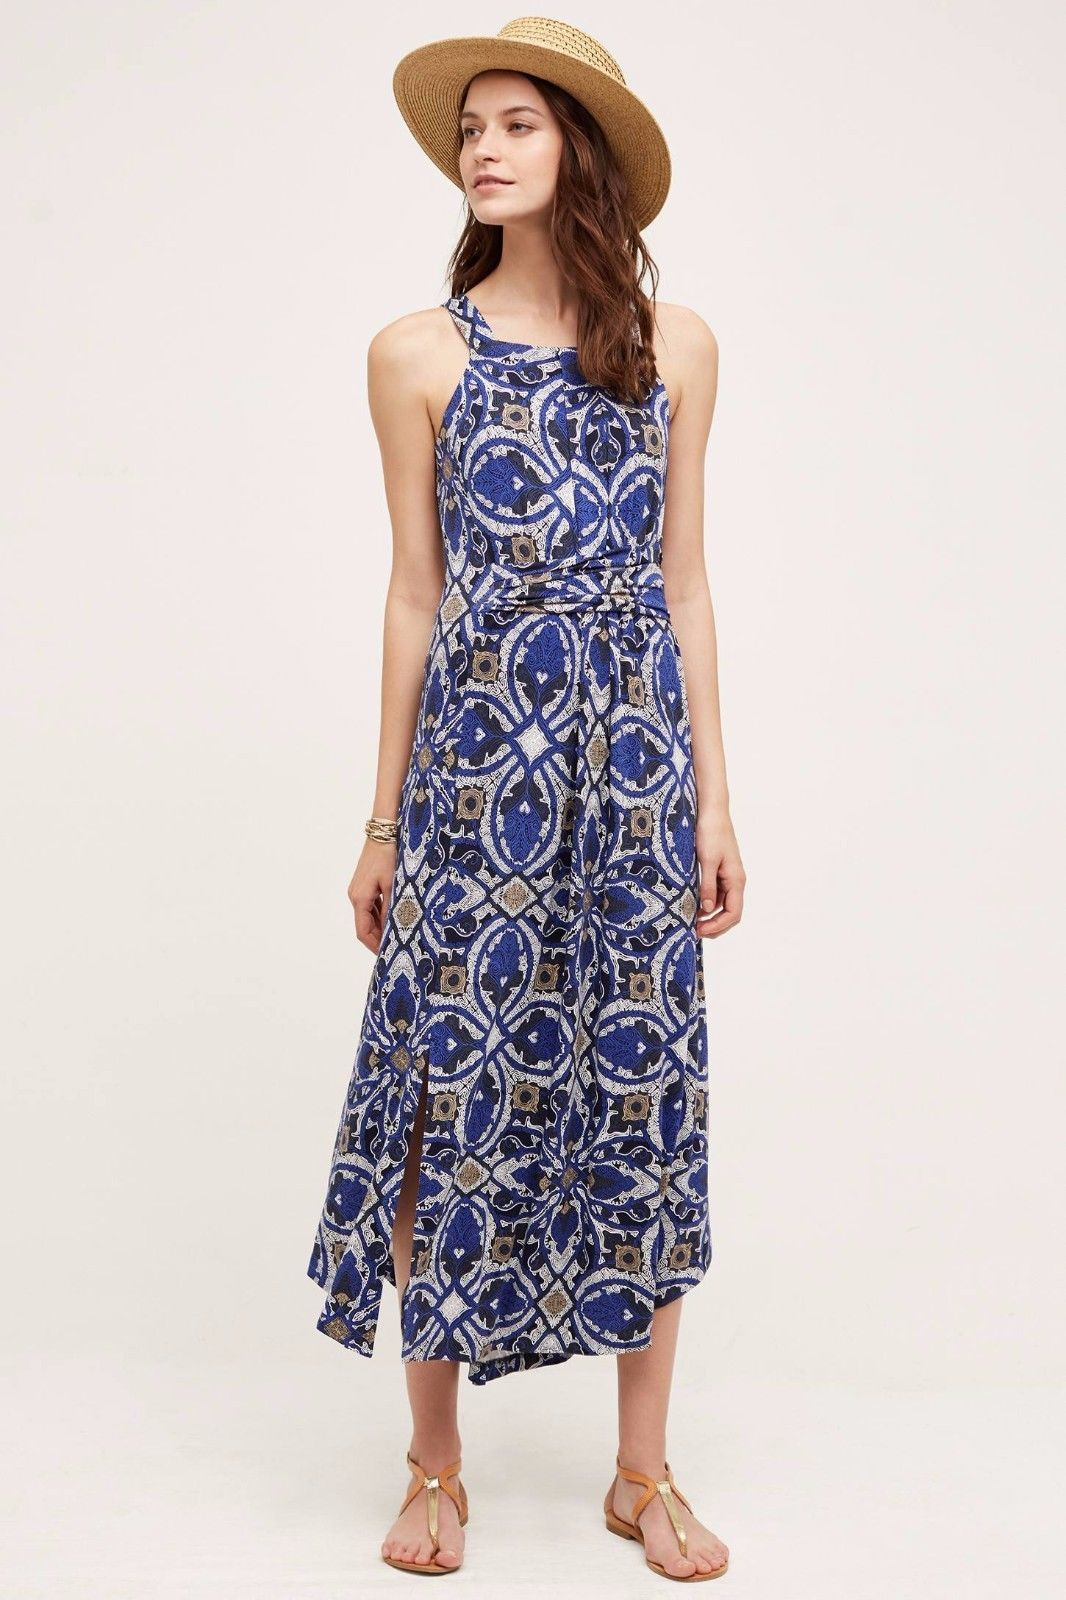 Primary image for NWT ANTHROPOLOGIE AURETTA PRINTED SLIM MAXI DRESS by MAEVE M